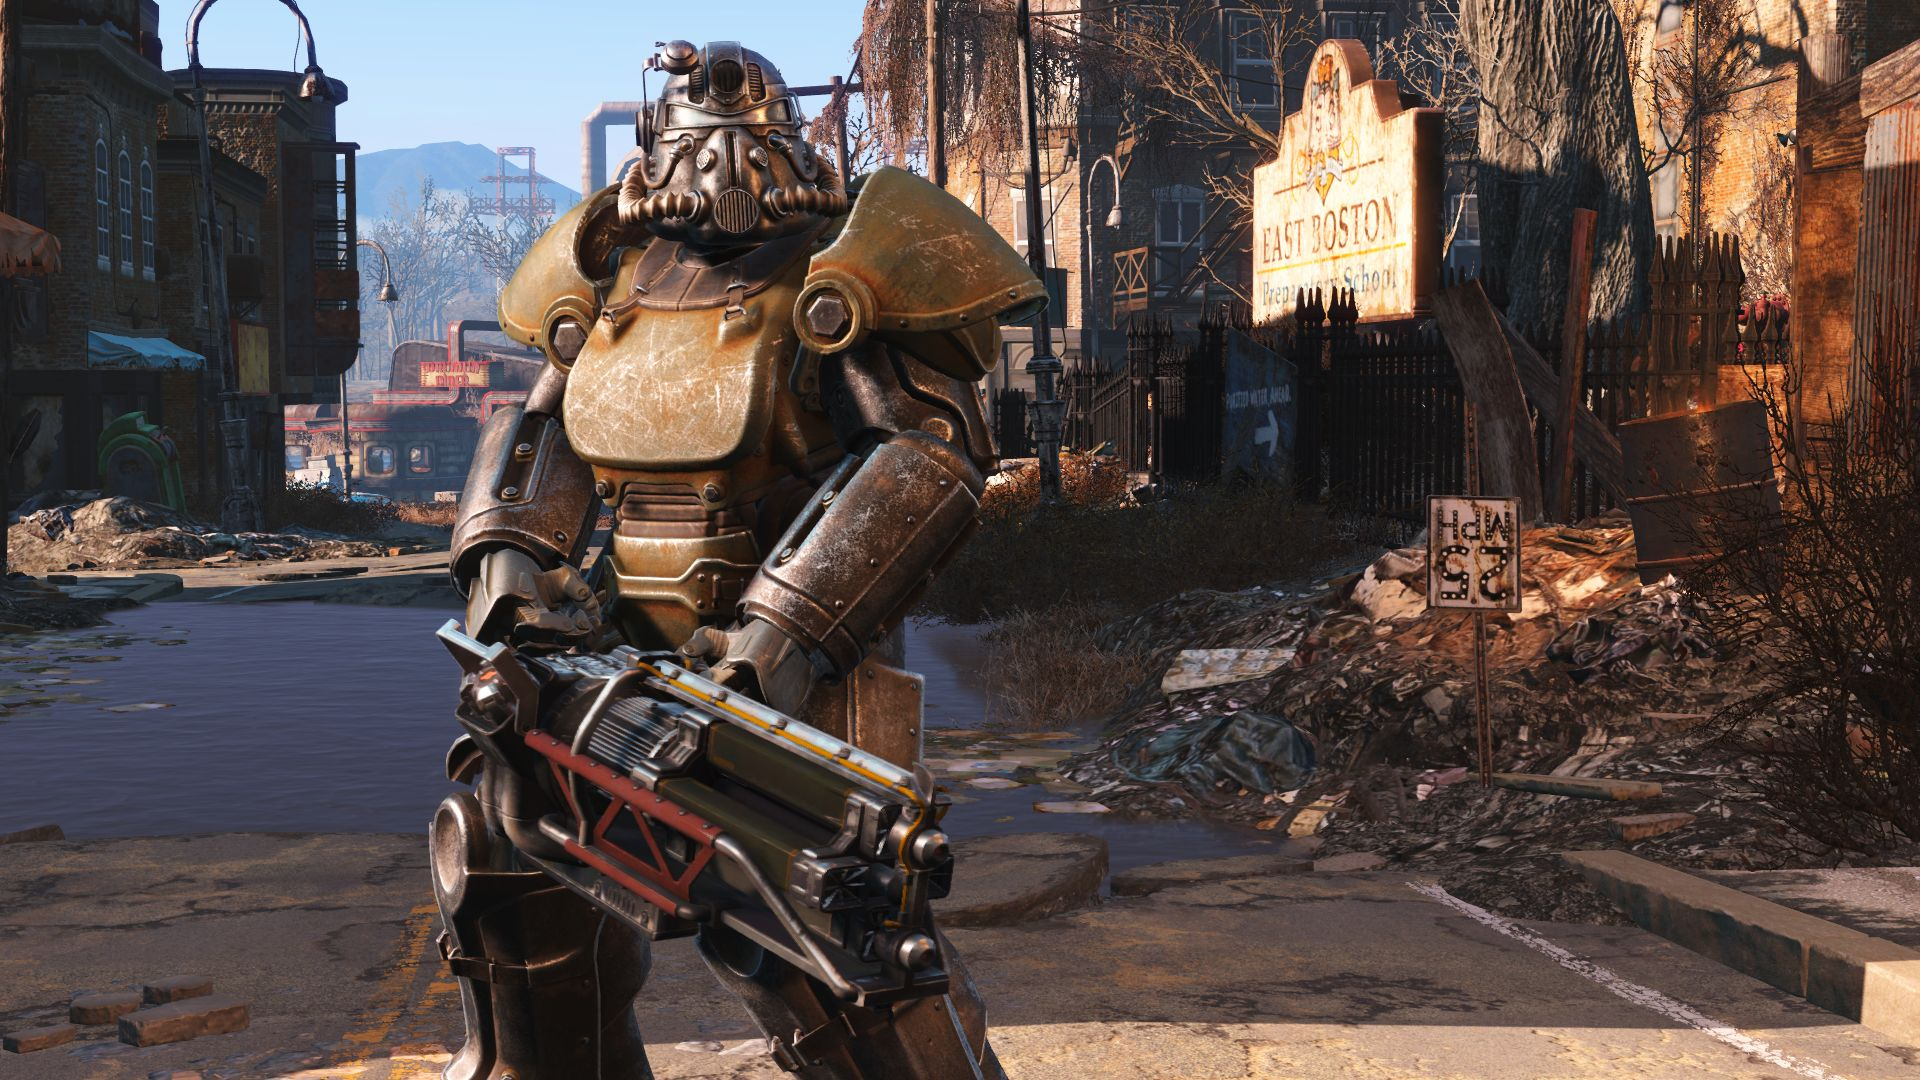 Fallout 4 (PS4) - post-apocalyptic technology